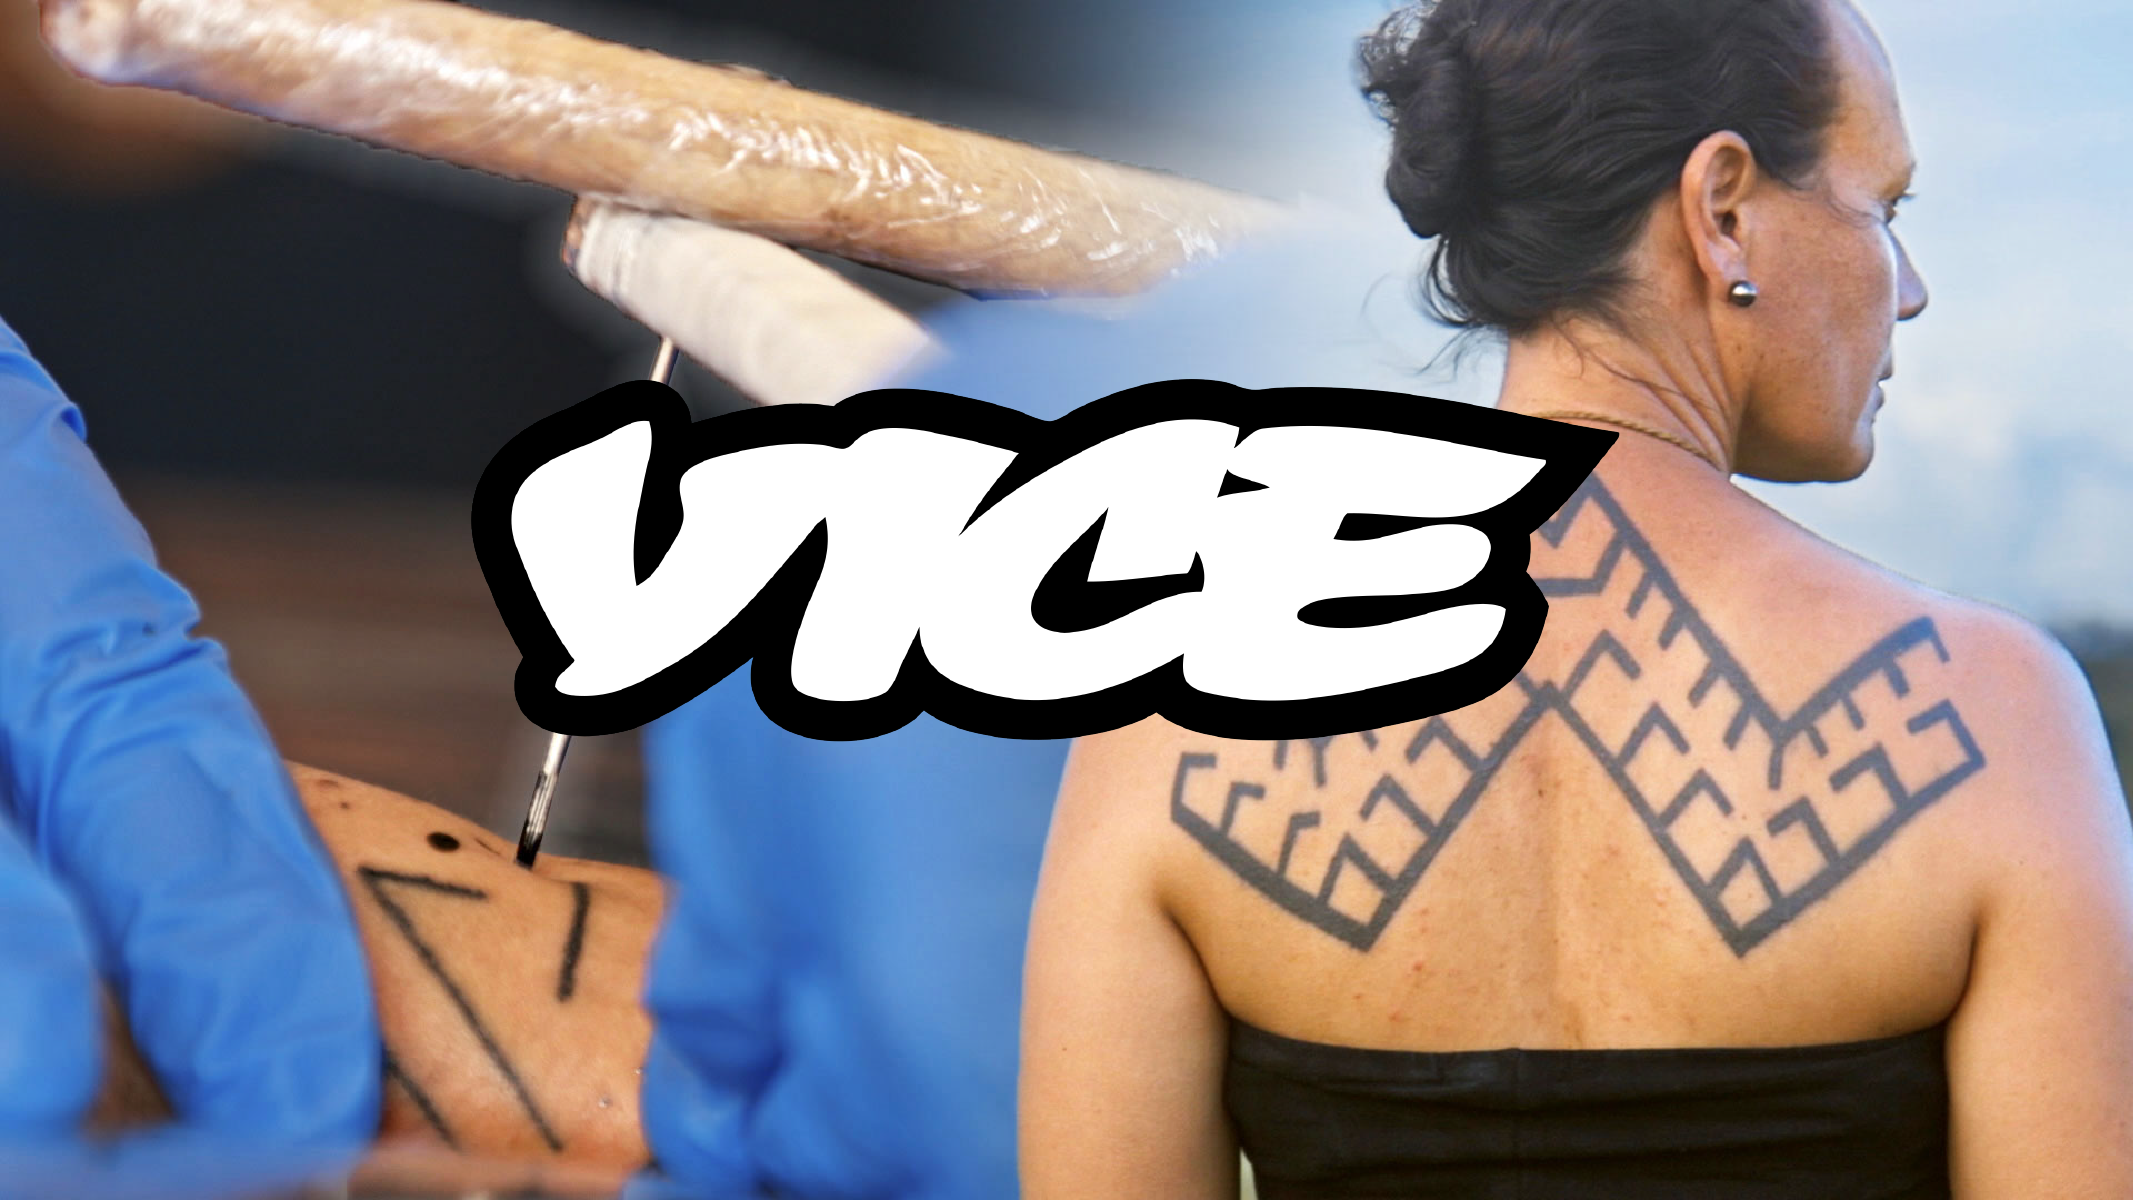 Julia_Vice Story Header